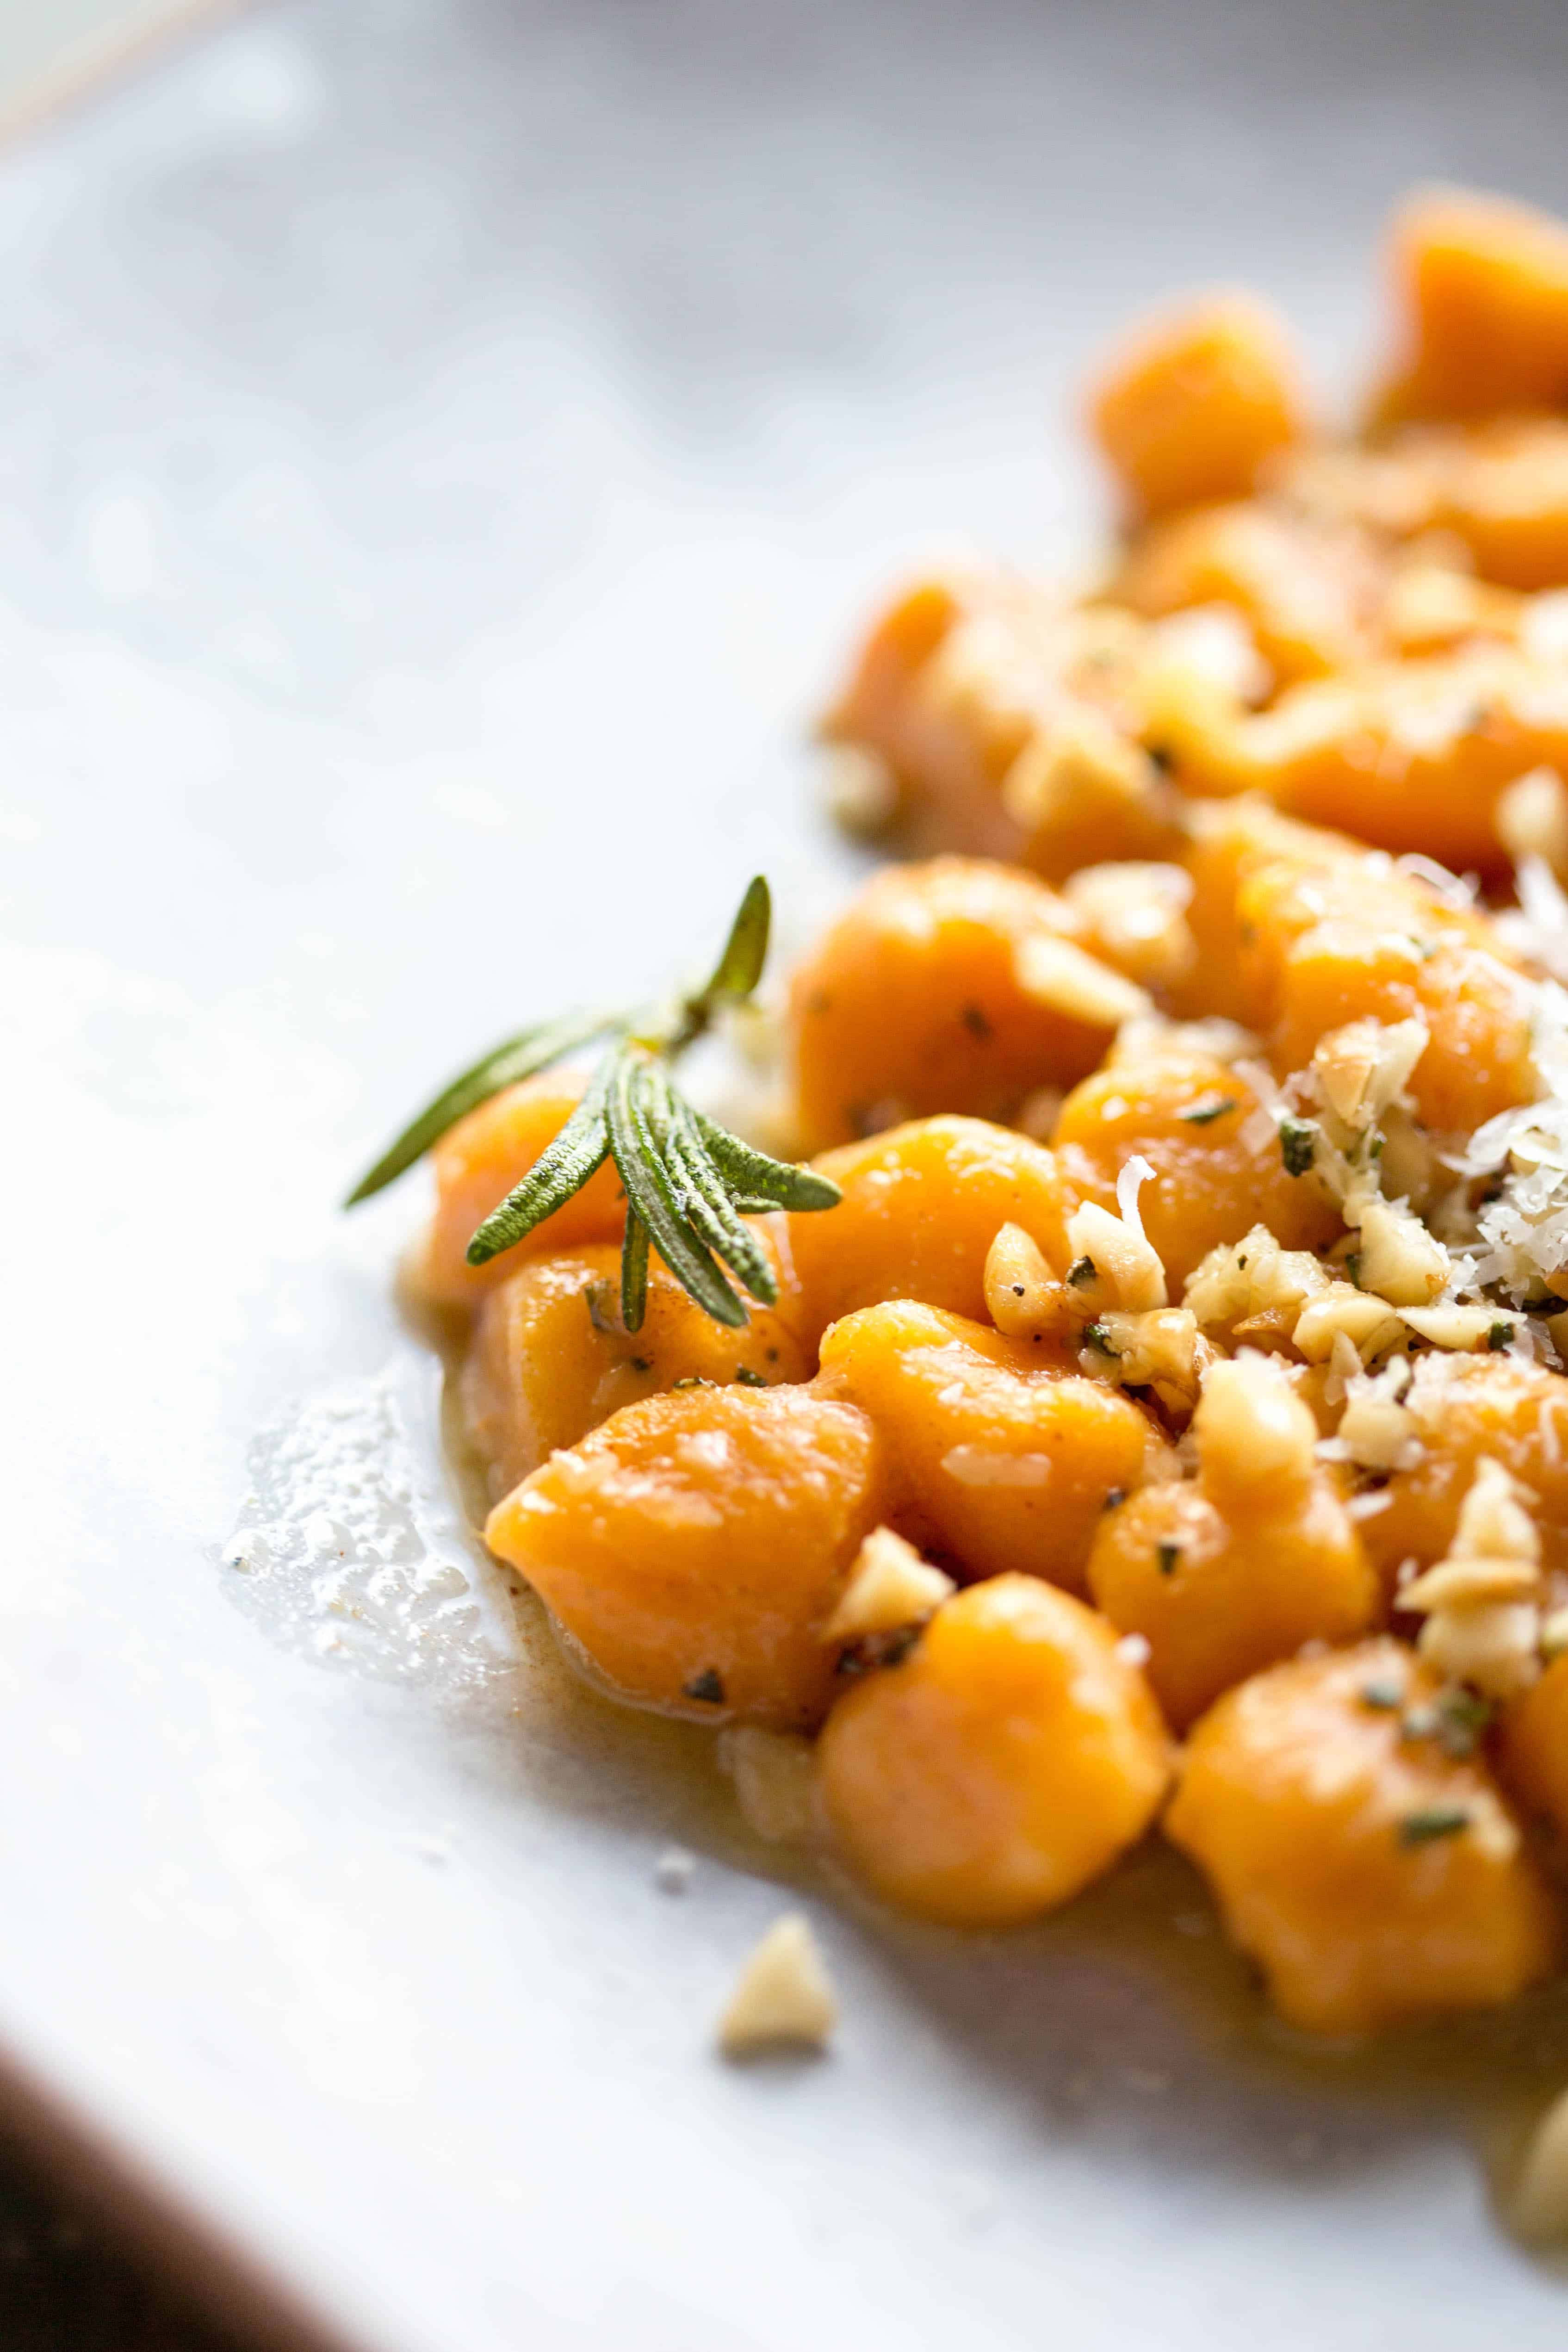 sweet potato gnocchi with brown butter rosemary and hazelnuts